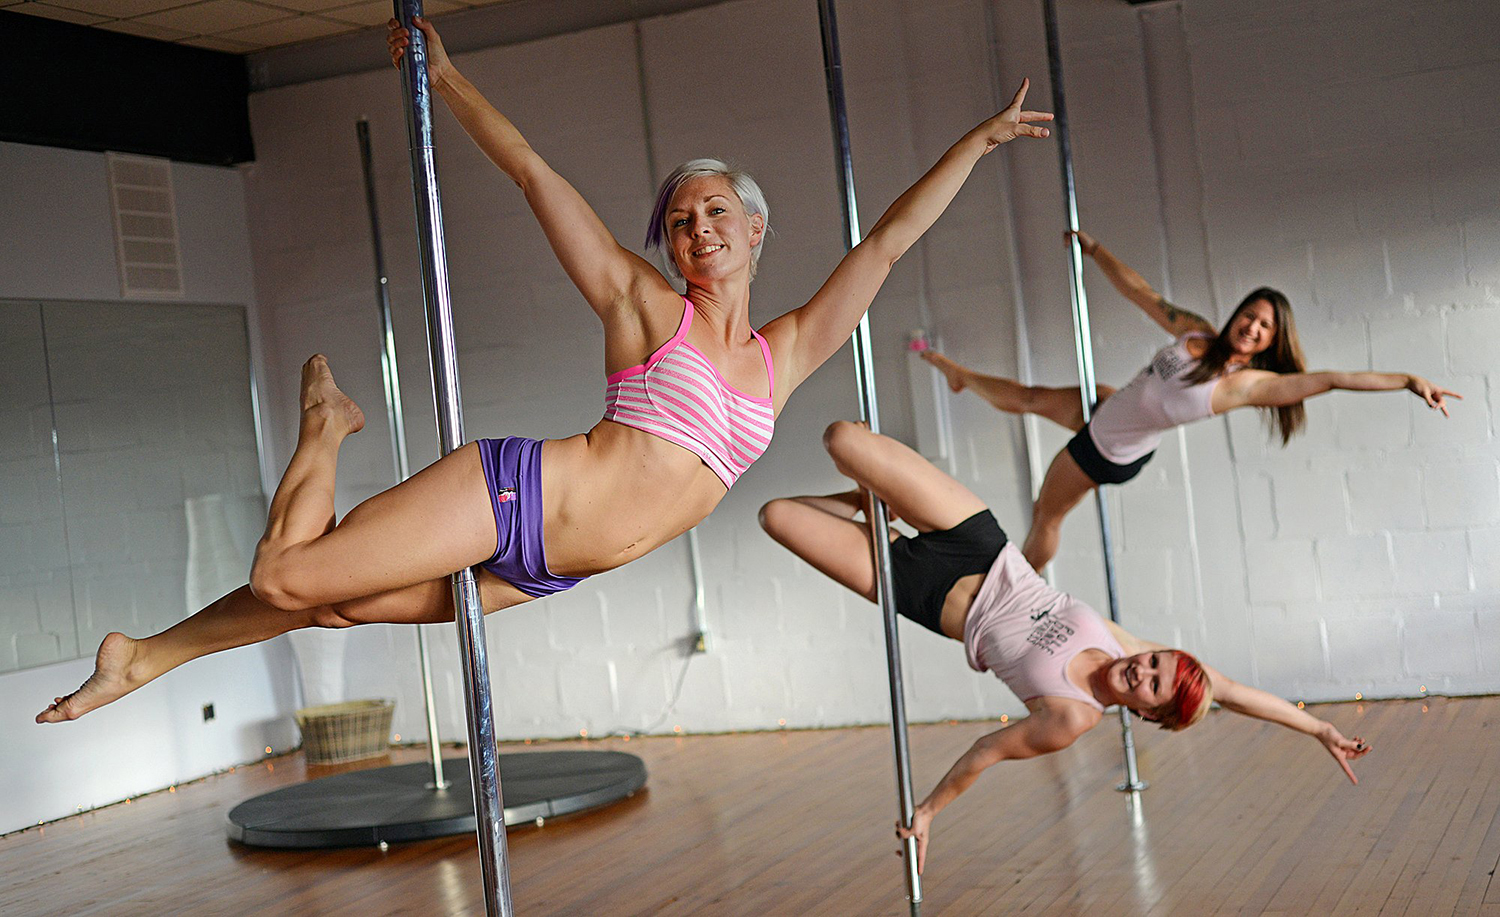 ADVANCE FOR RELEASE SATURDAY, NOV. 9, 2013, AND THEREAFTER - In this October 2013 photo, Pole Dance Fitness studio owner Lucy Howard, front, and stude...